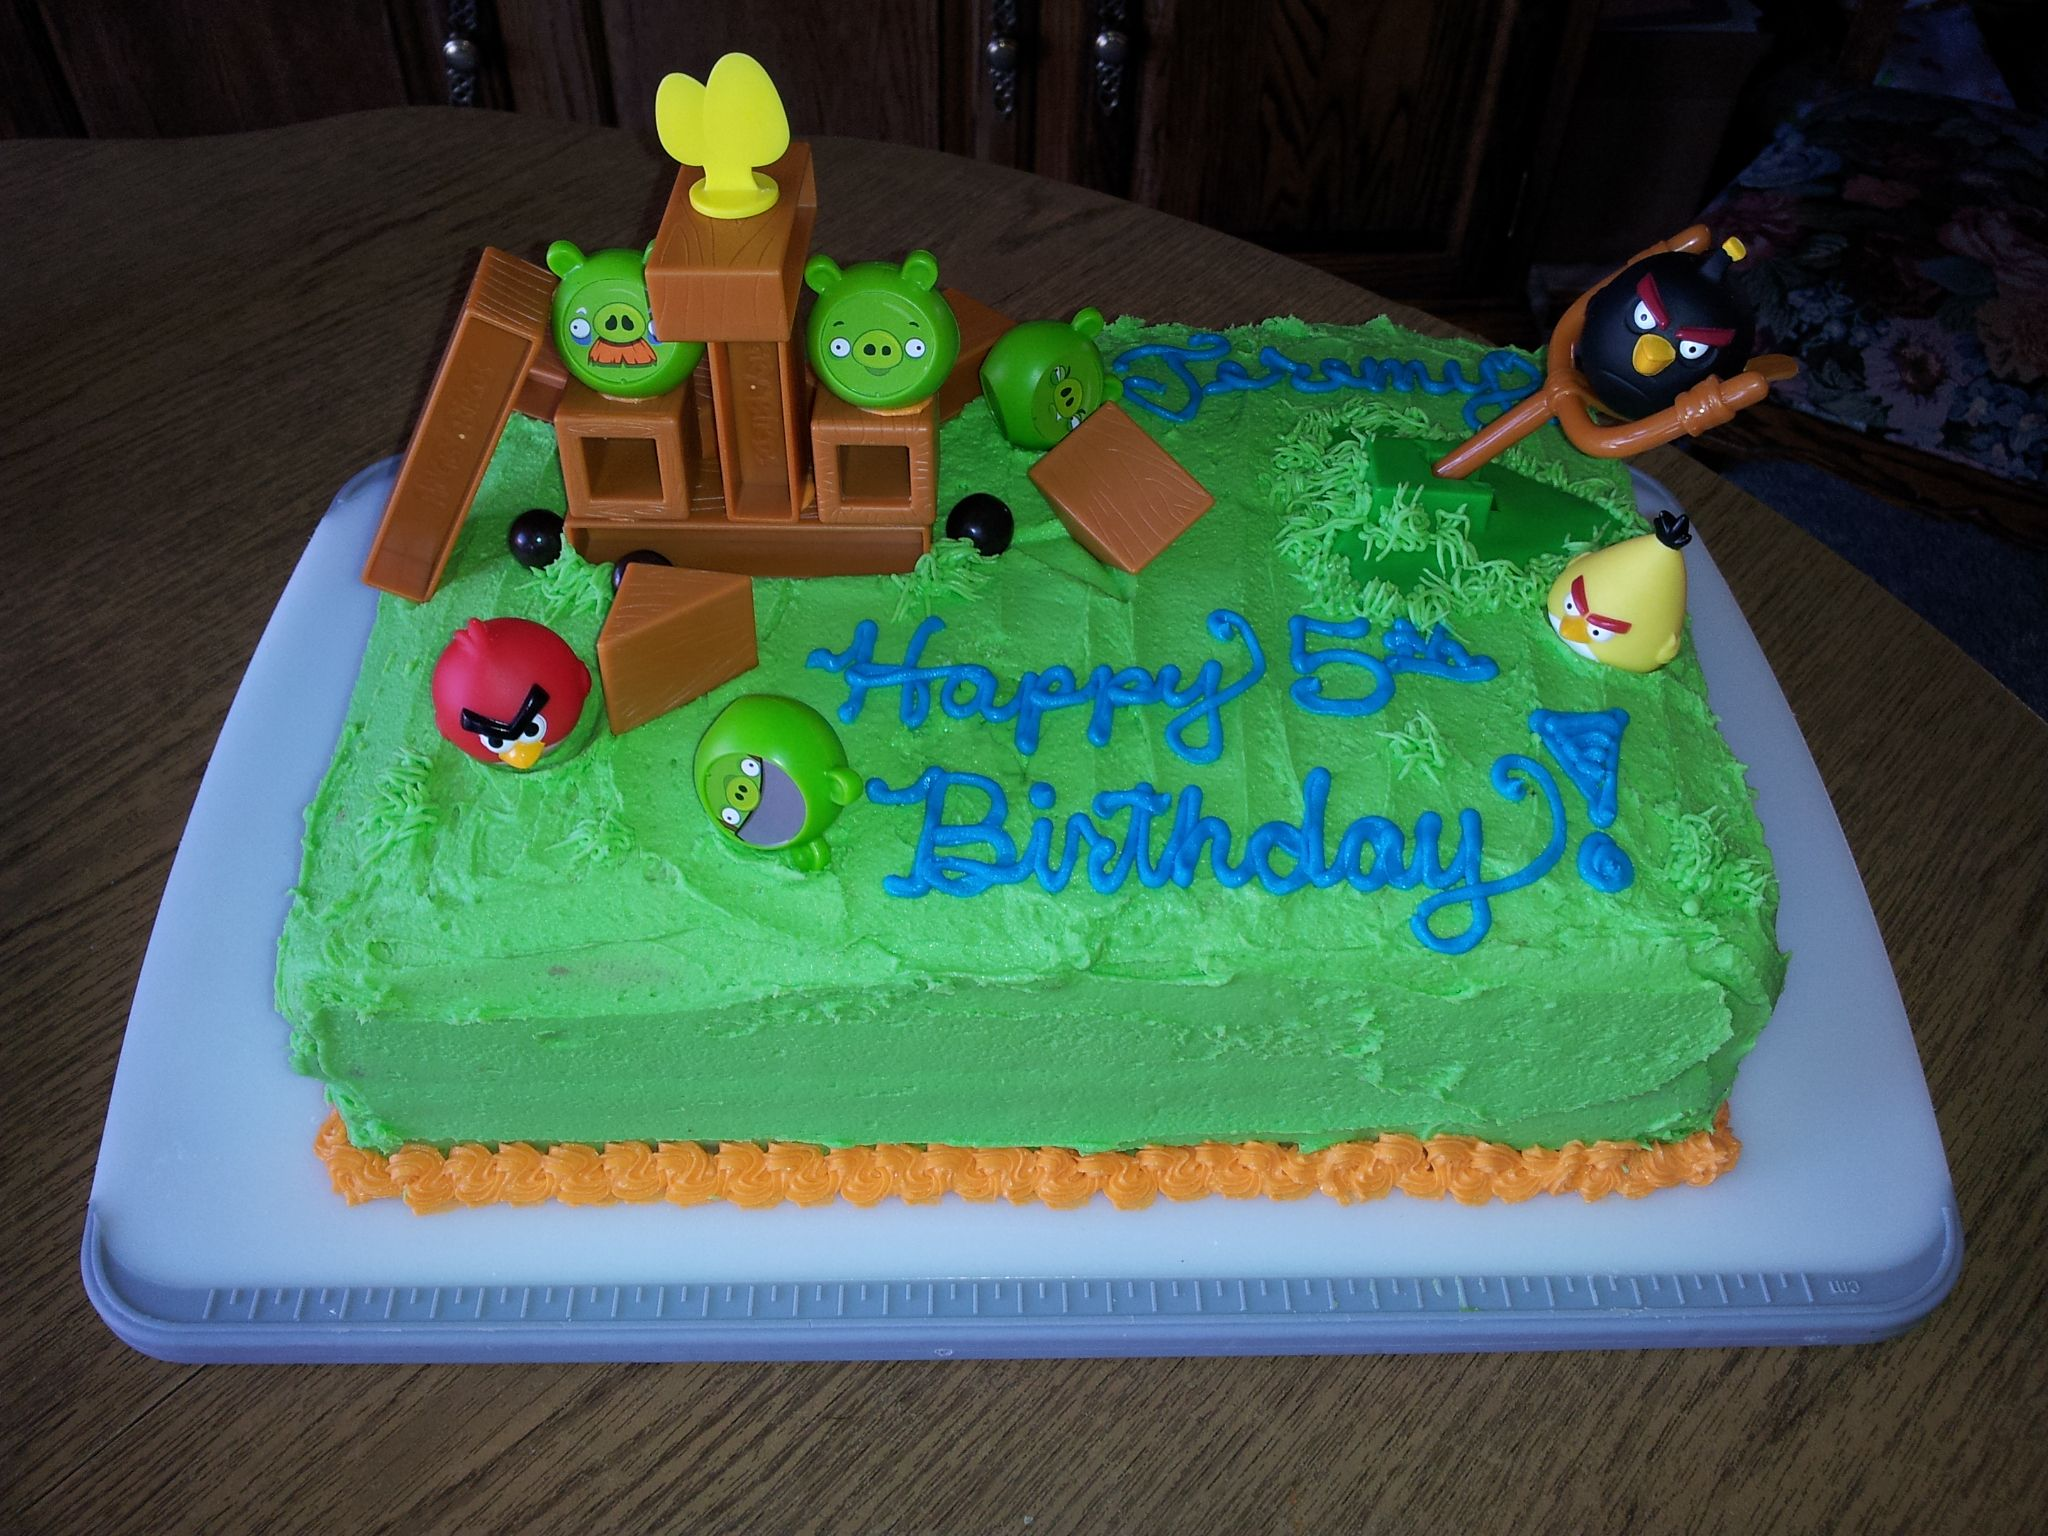 Easy Angry Bird cakepieces from the board game on a 14 sheet